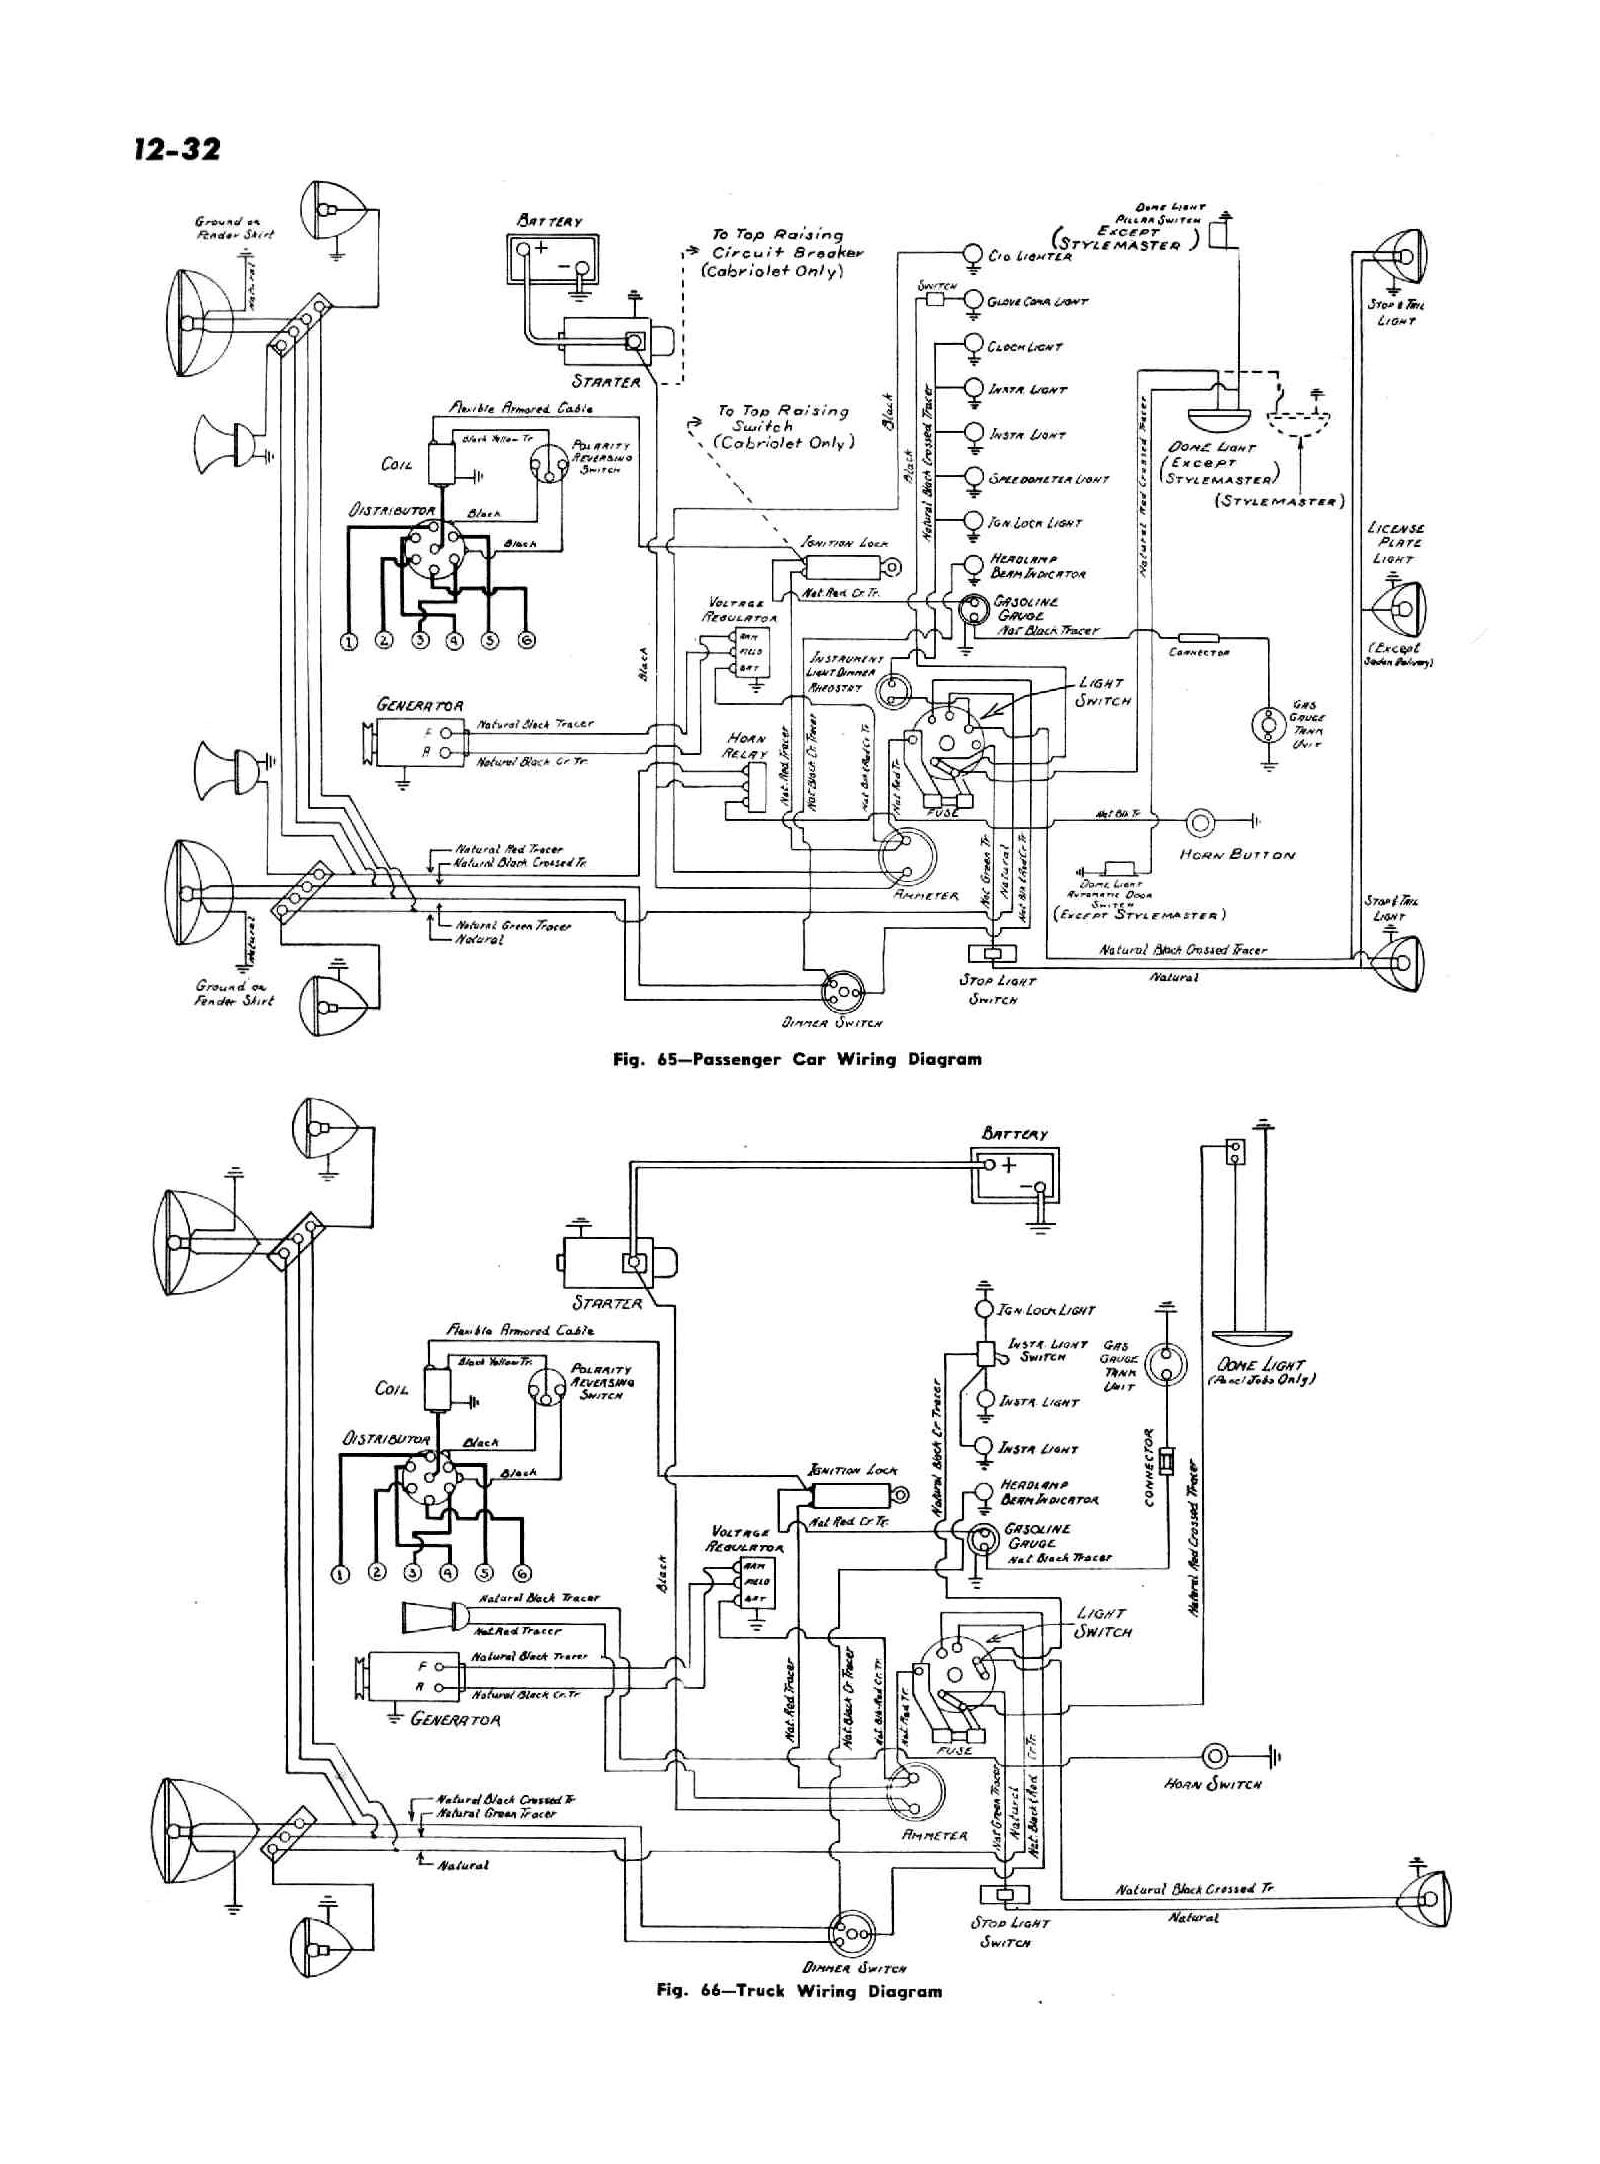 1986 International Truck Wiring Diagram Automotive Diagrams 1947 Wire Center Electrical 1979